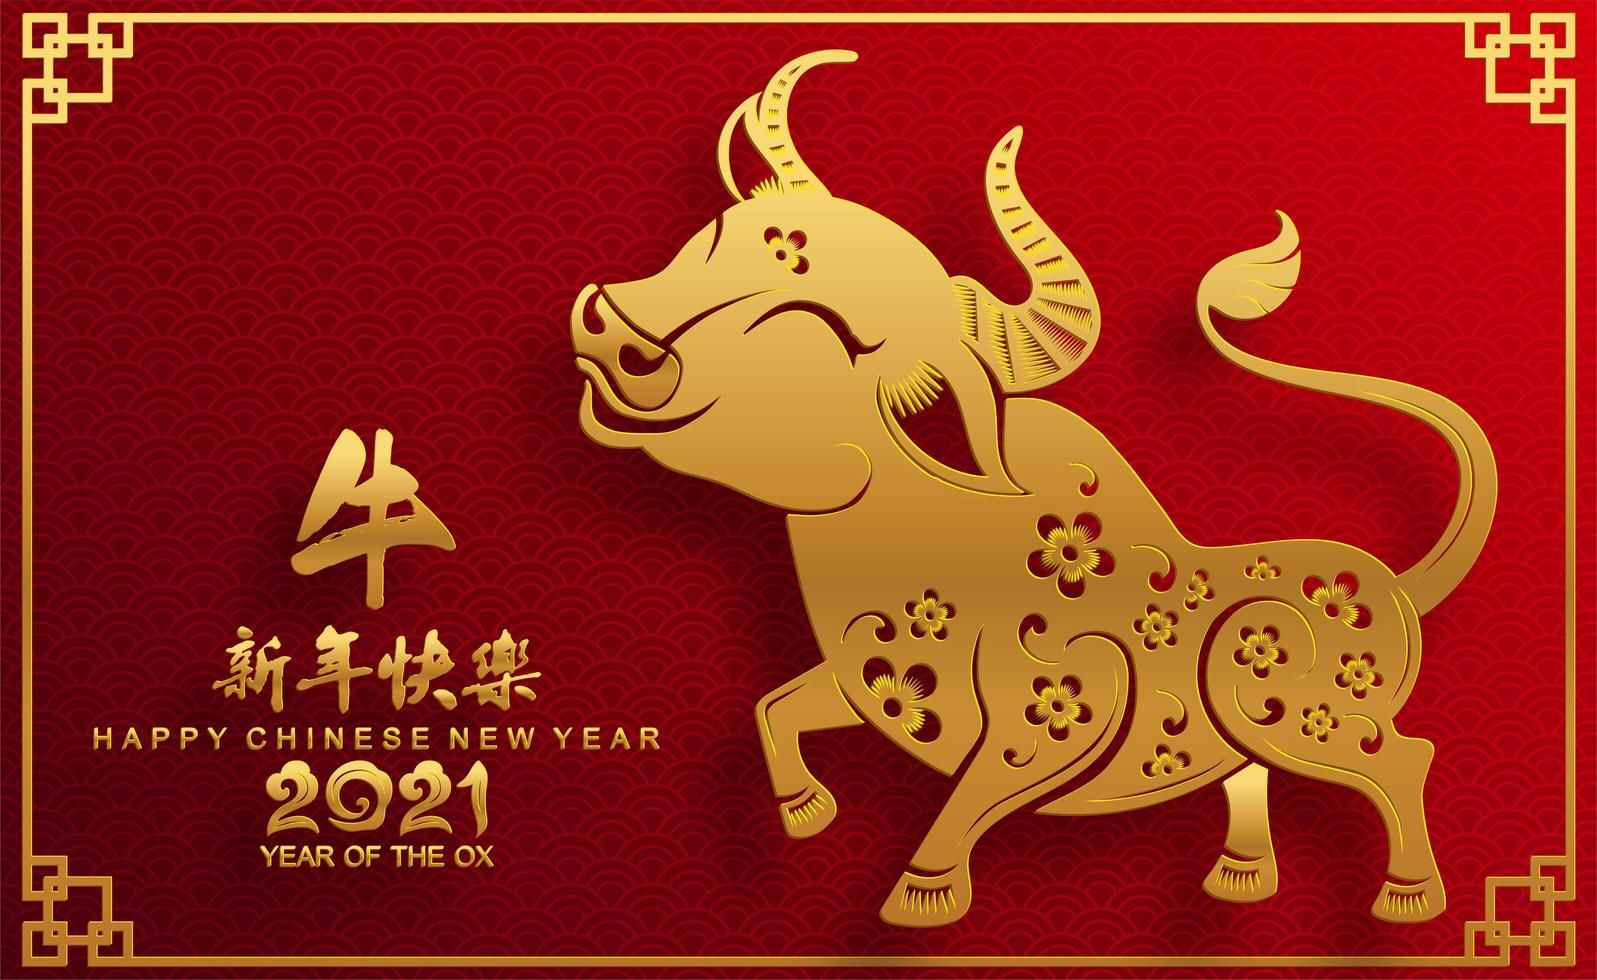 Year Of The Ox 2021 Images And Wallpaper Chinese Zodiac Signs Ox Chinese Zodiac Chinese Zodiac Tattoo